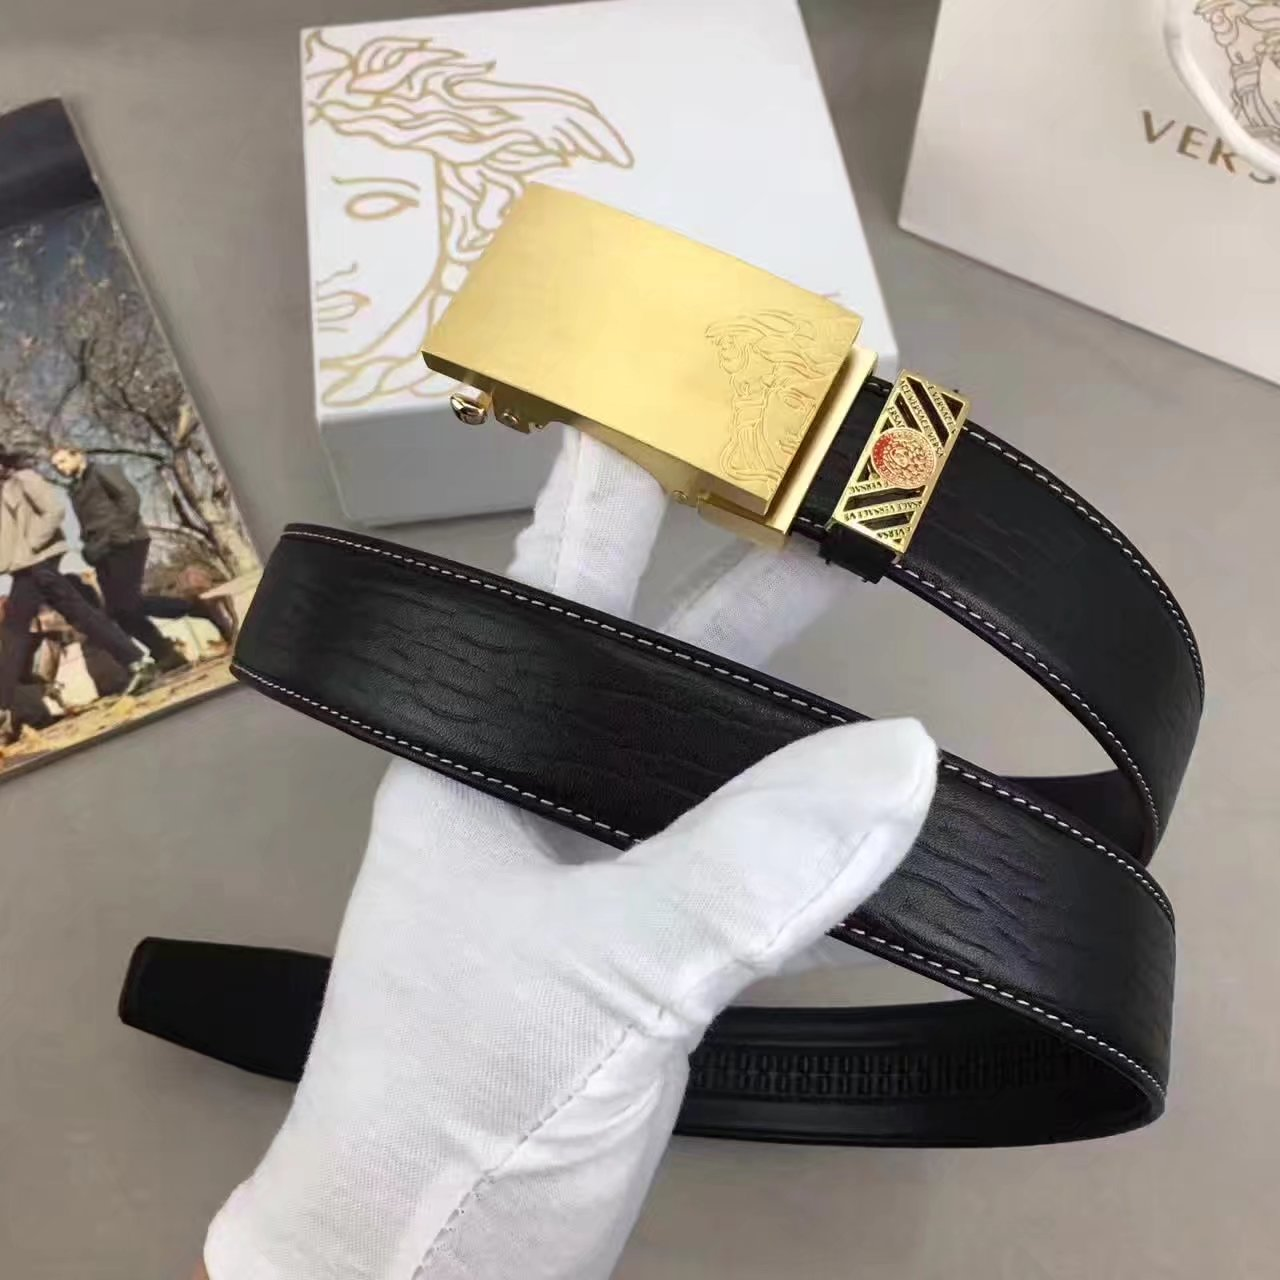 Versace Men Leather Belt With Gold Buckle 002